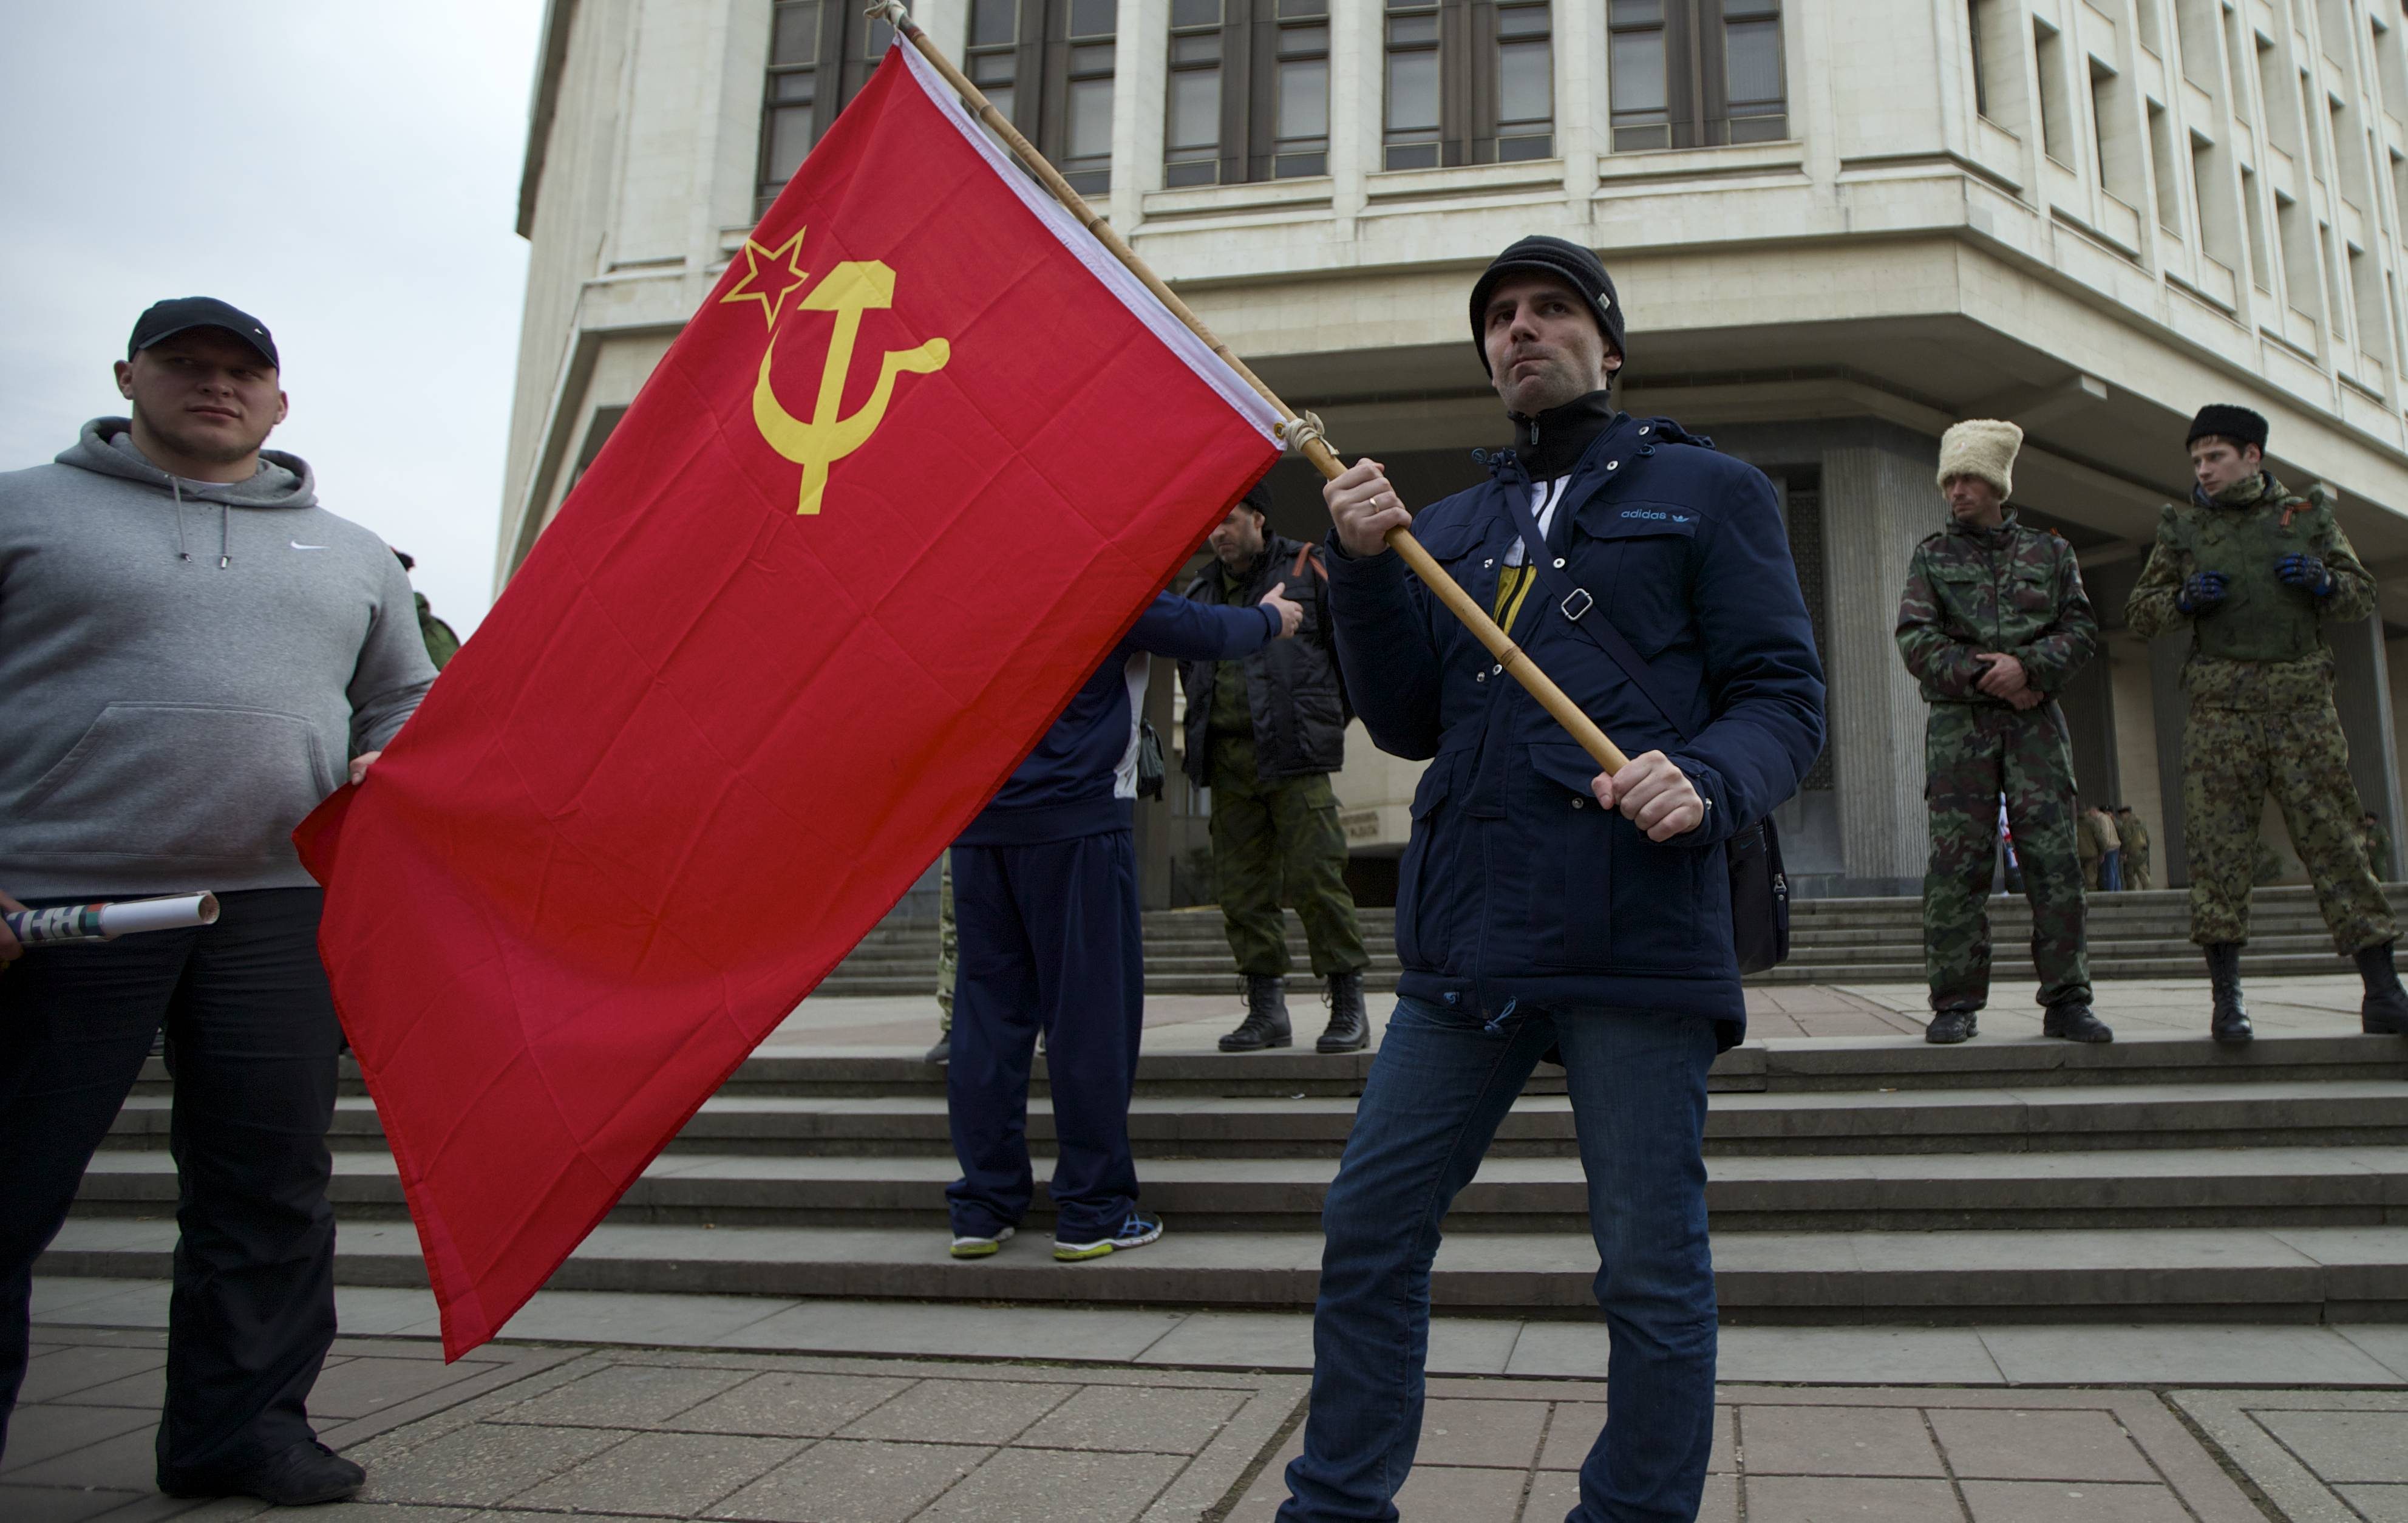 Local residents hold a Soviet flag as members of Cossack militia guard the local parliament building in Simferopol, Ukraine, Thursday. Lawmakers in Crimea declared their intention to split from Ukraine and join Russia instead, and scheduled a referendum in 10 days for voters to decide the fate of the disputed peninsula.